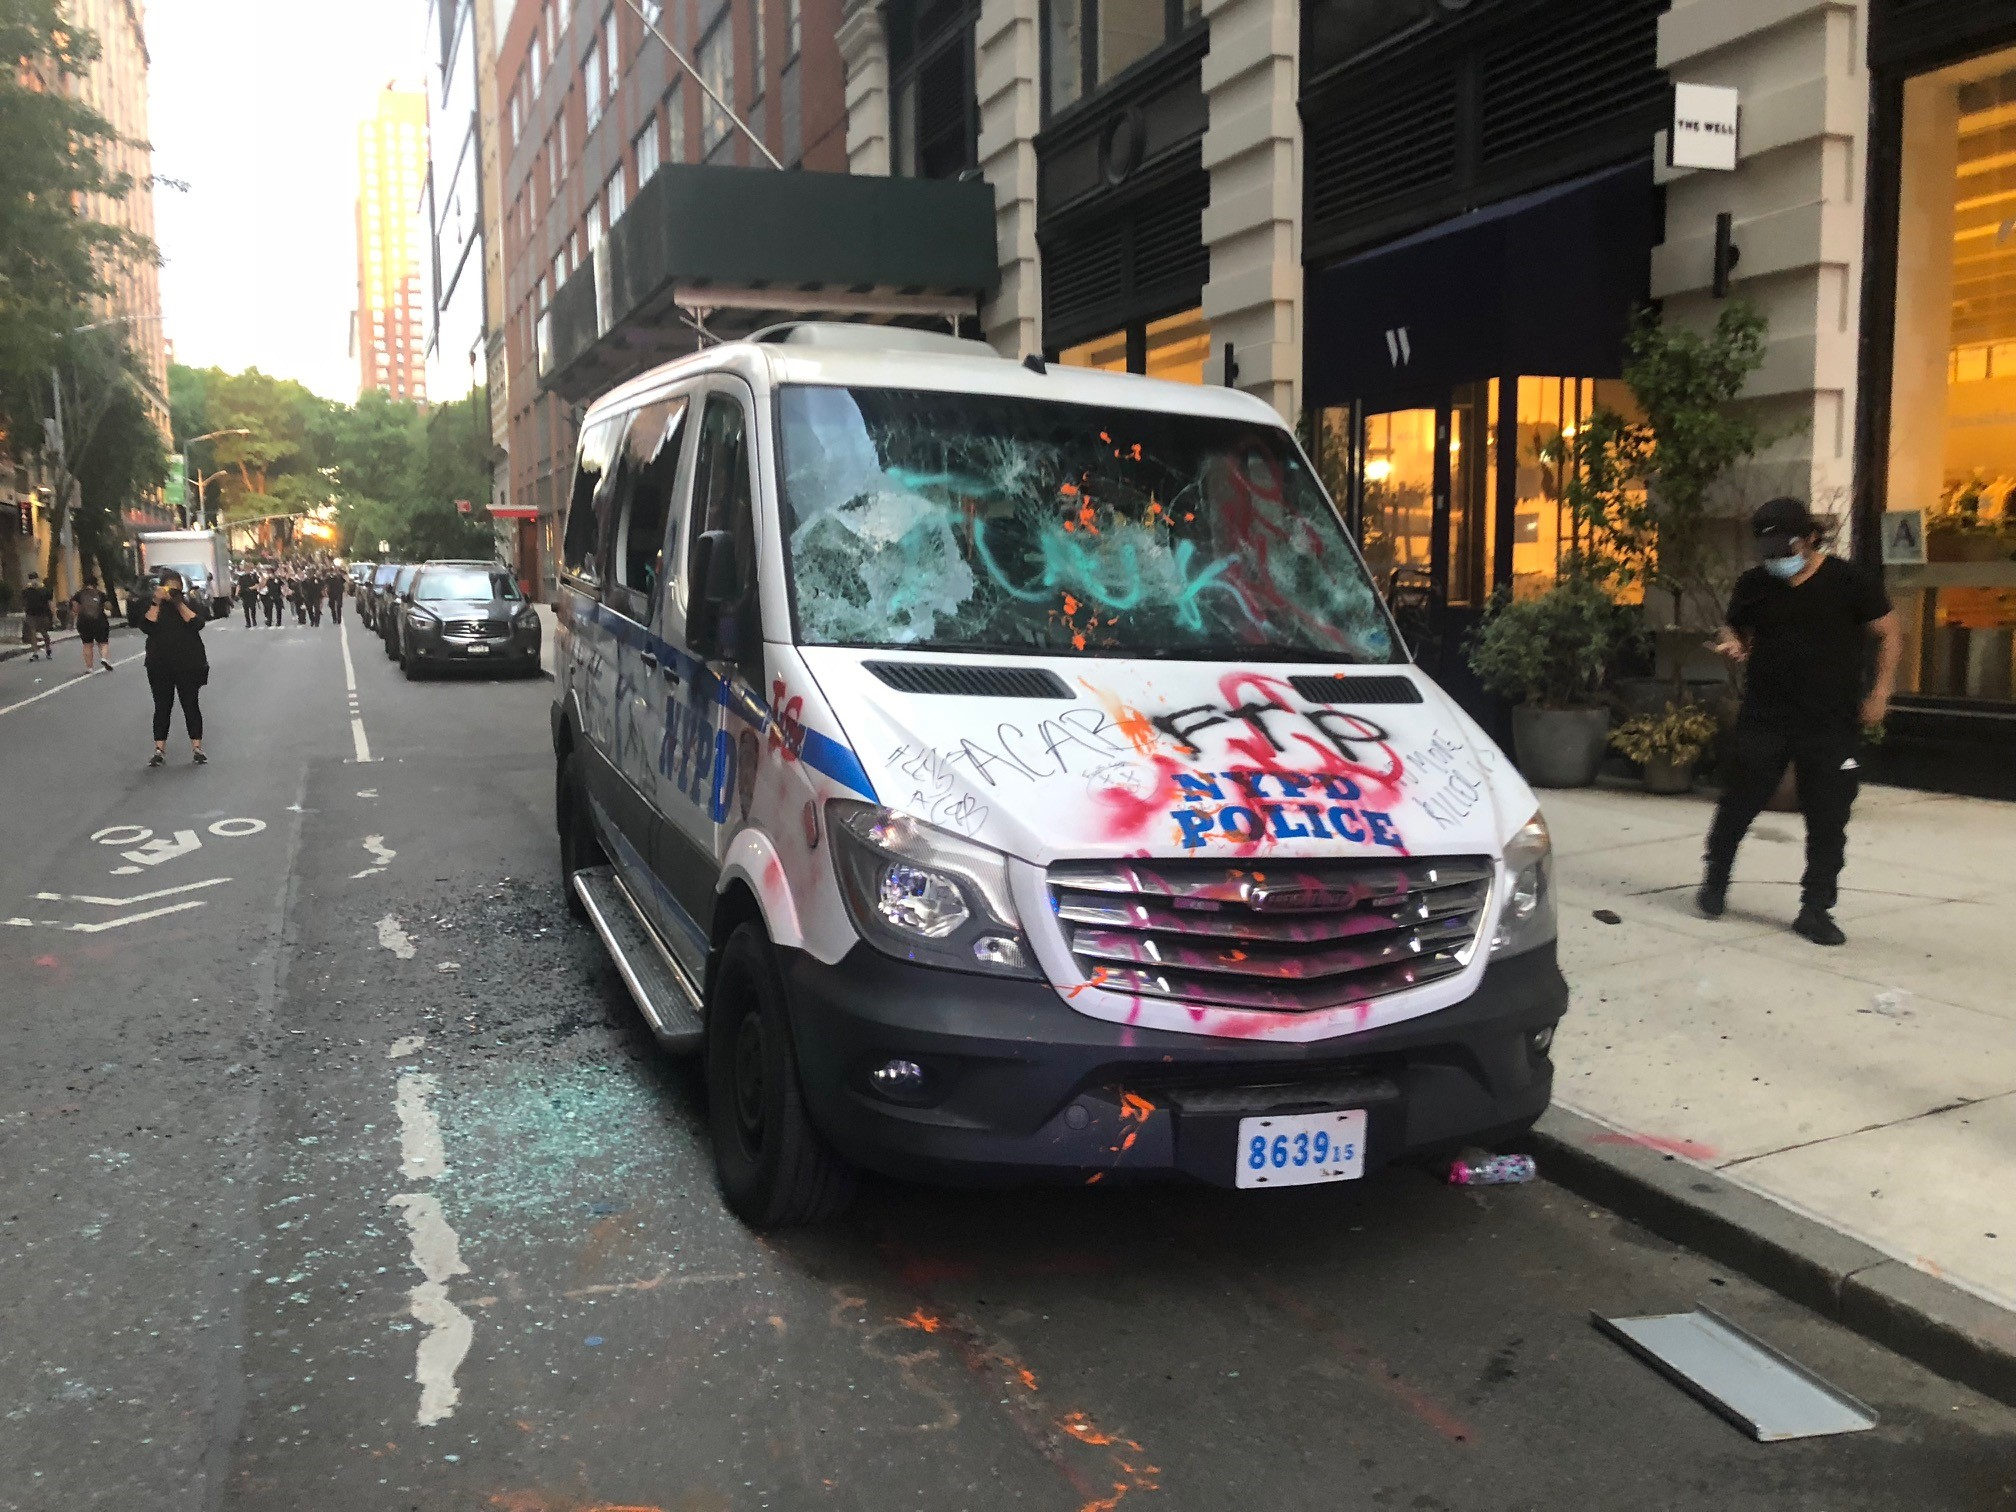 This NYPD van was vandalized and spray painted by protesters on May 30, 2020.